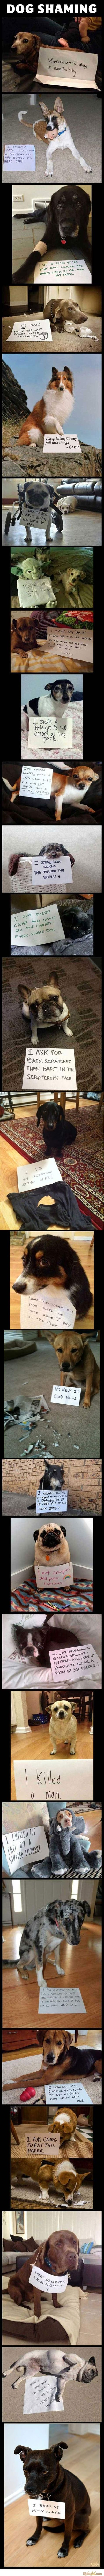 best nolaus images on pinterest business dog daycare and dog cat